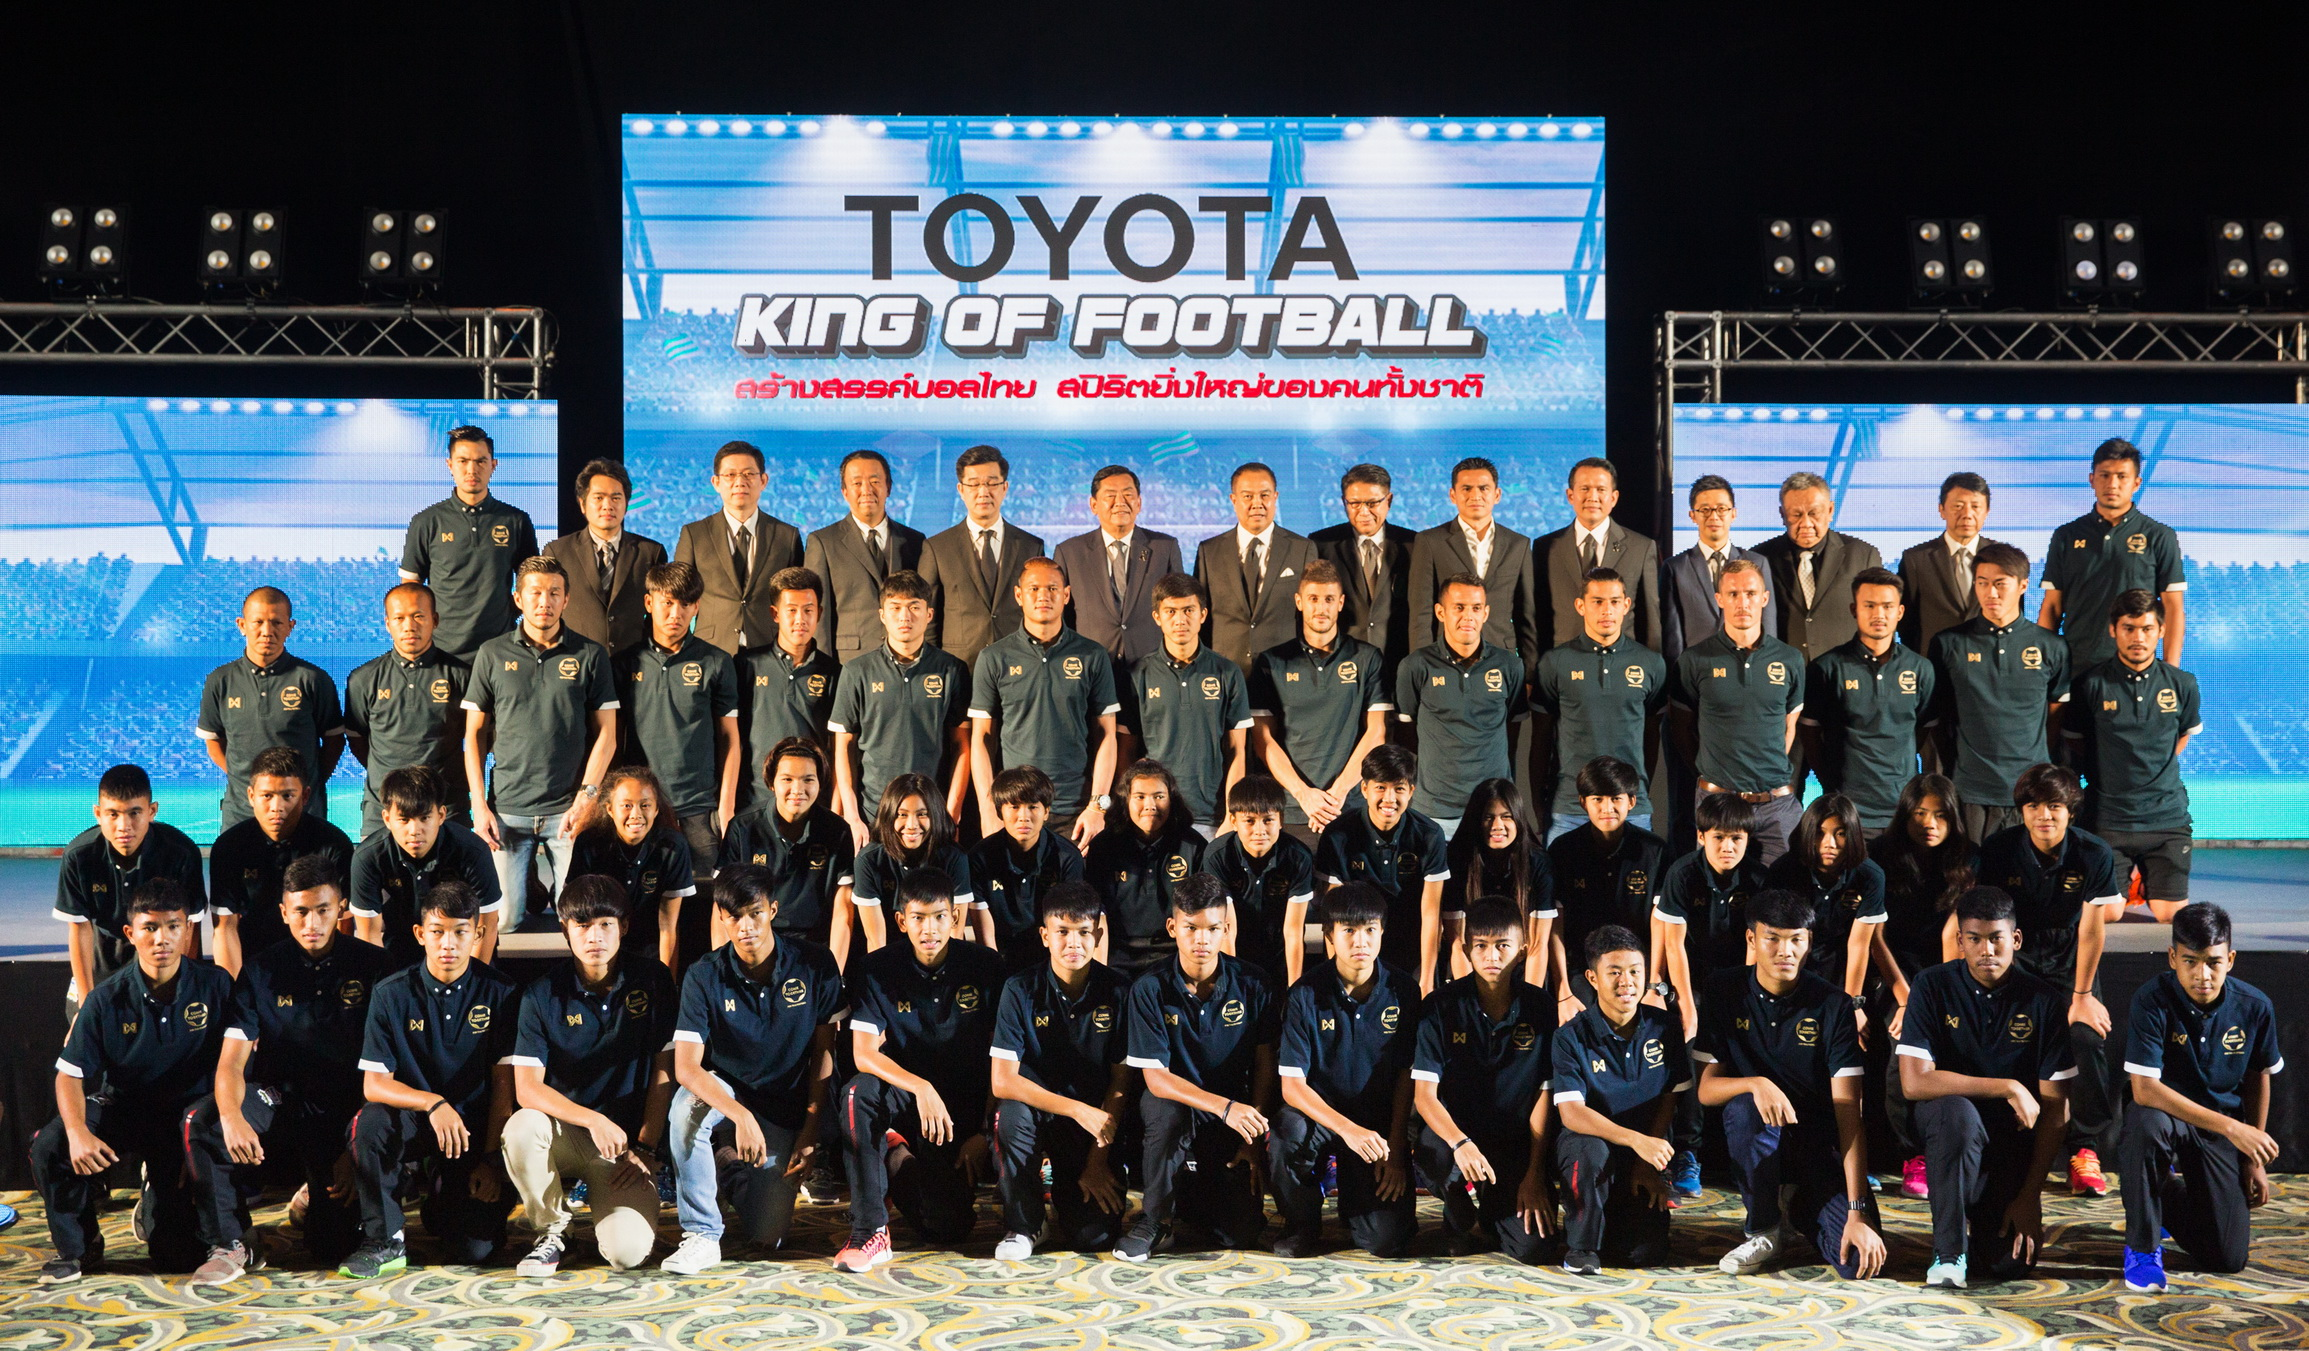 toyota-king-of-football_005